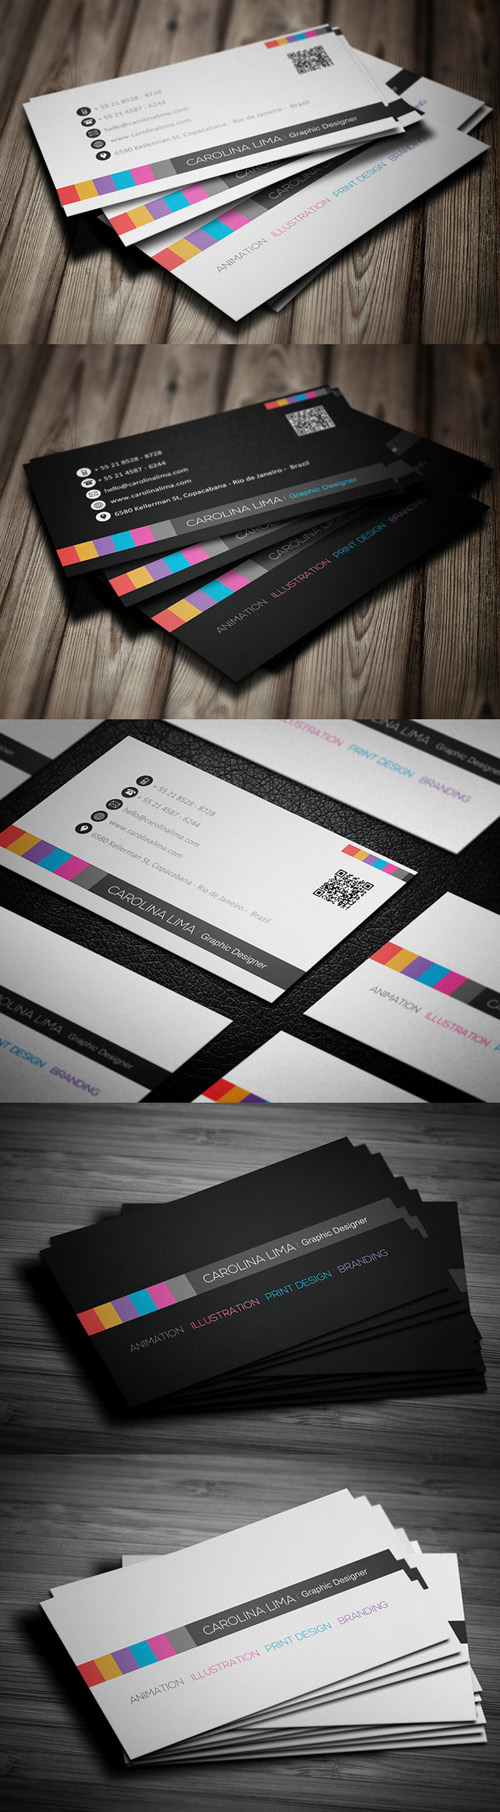 Business Cards Design - 12